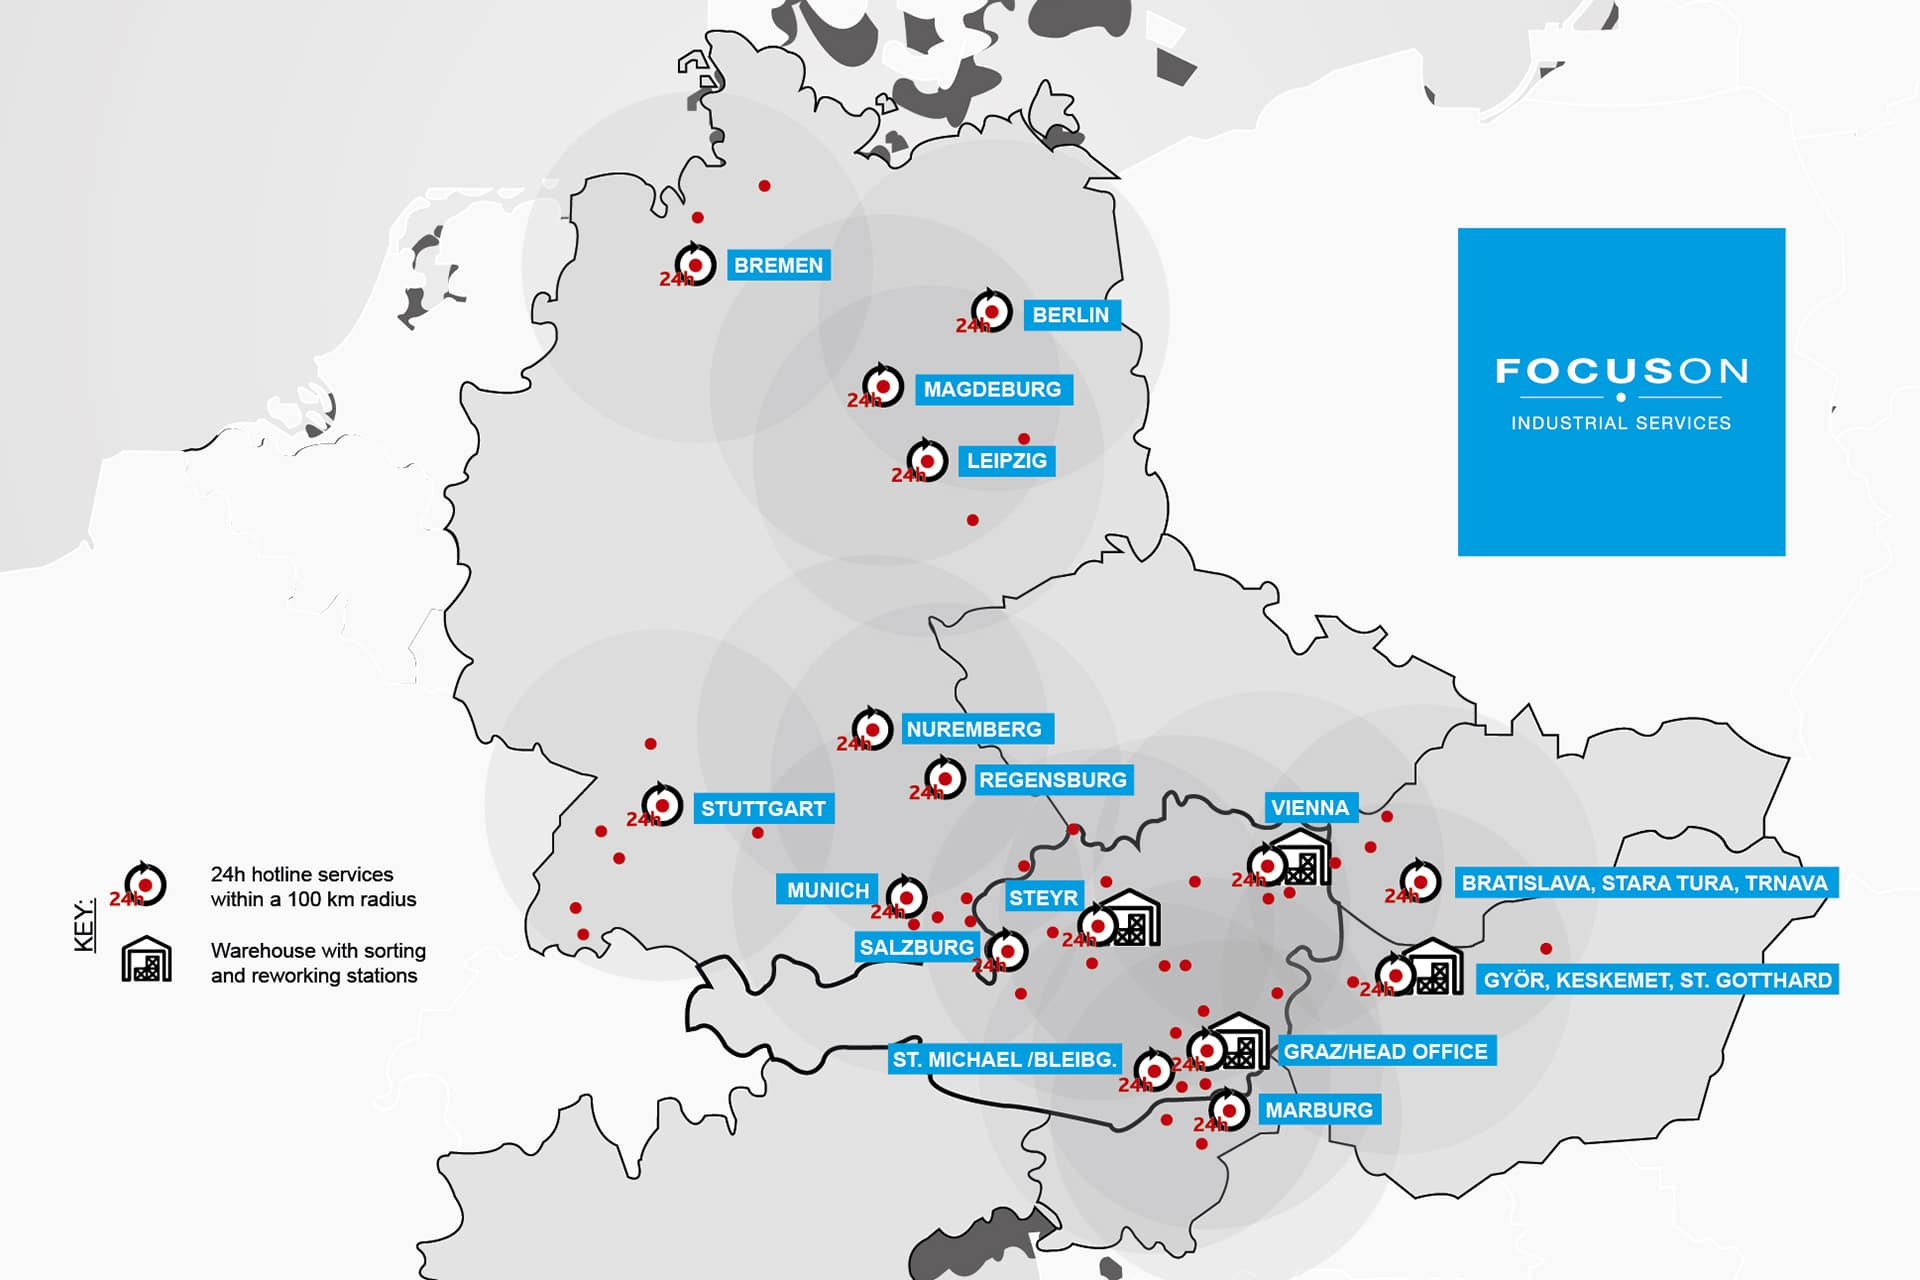 FOCUSON Industrial Services - Areas of Application and Locations